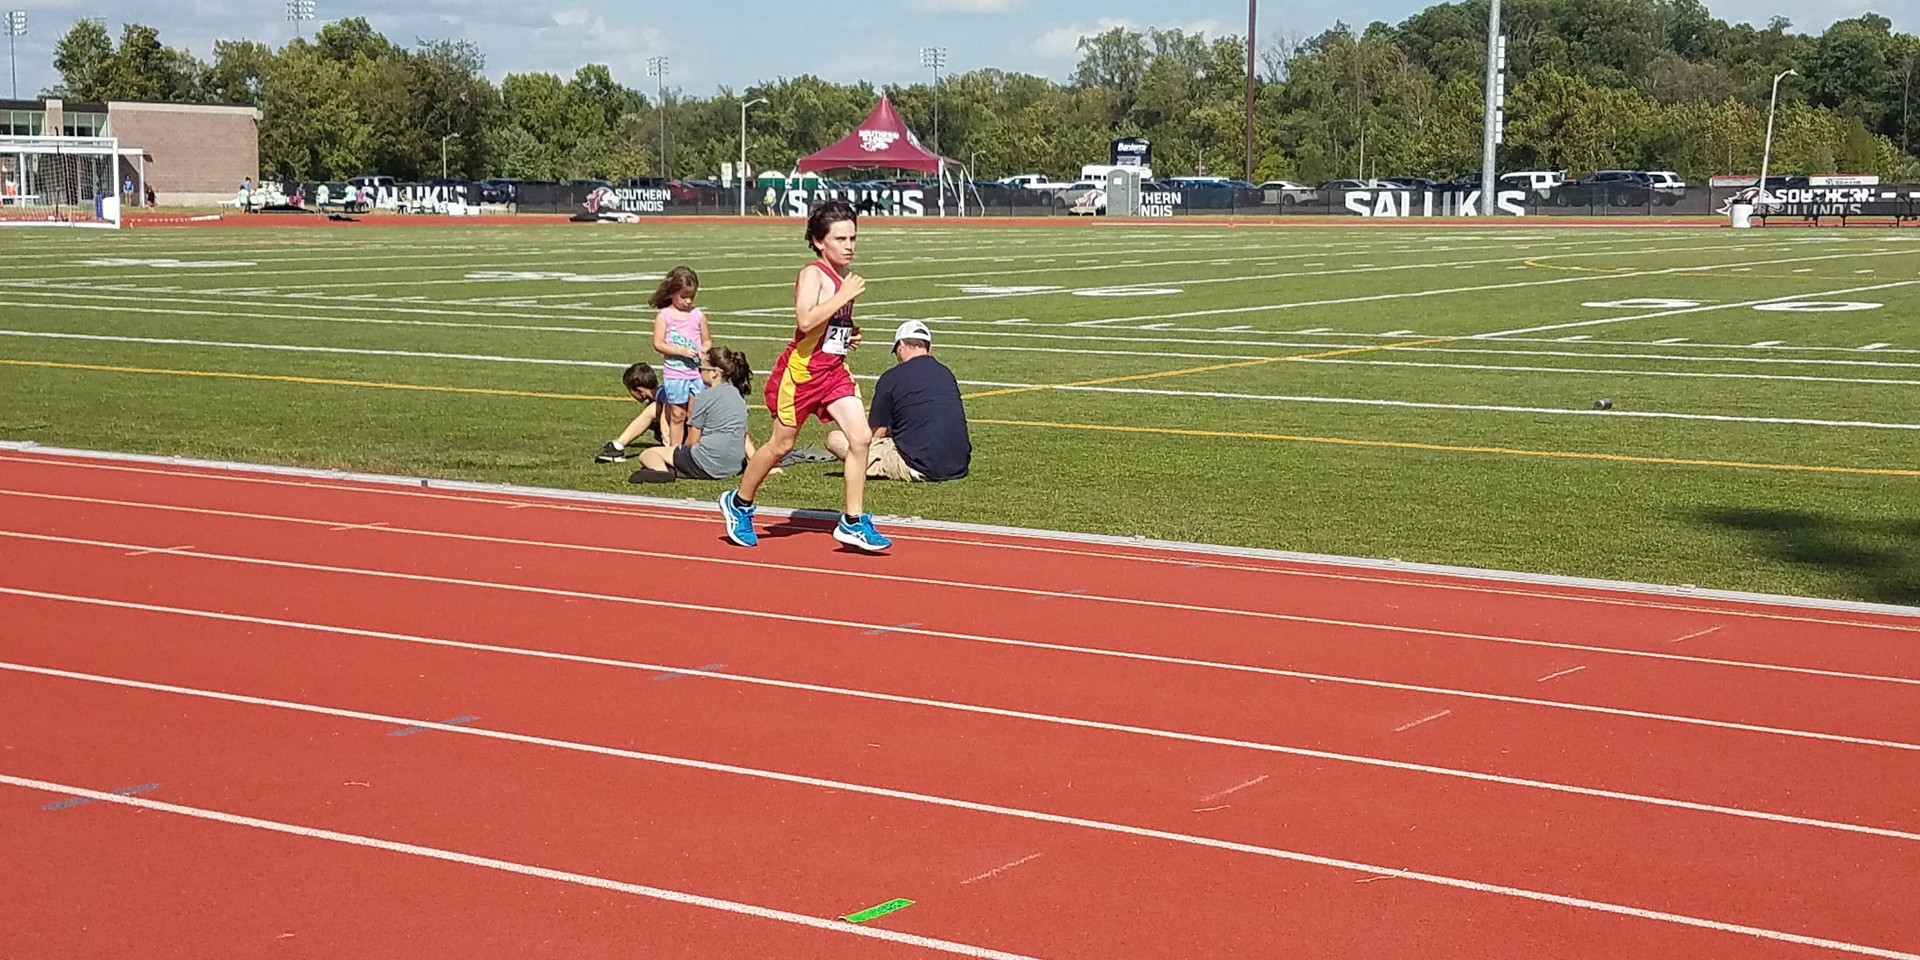 A Unity Point School Middle School Boys' Mile runner